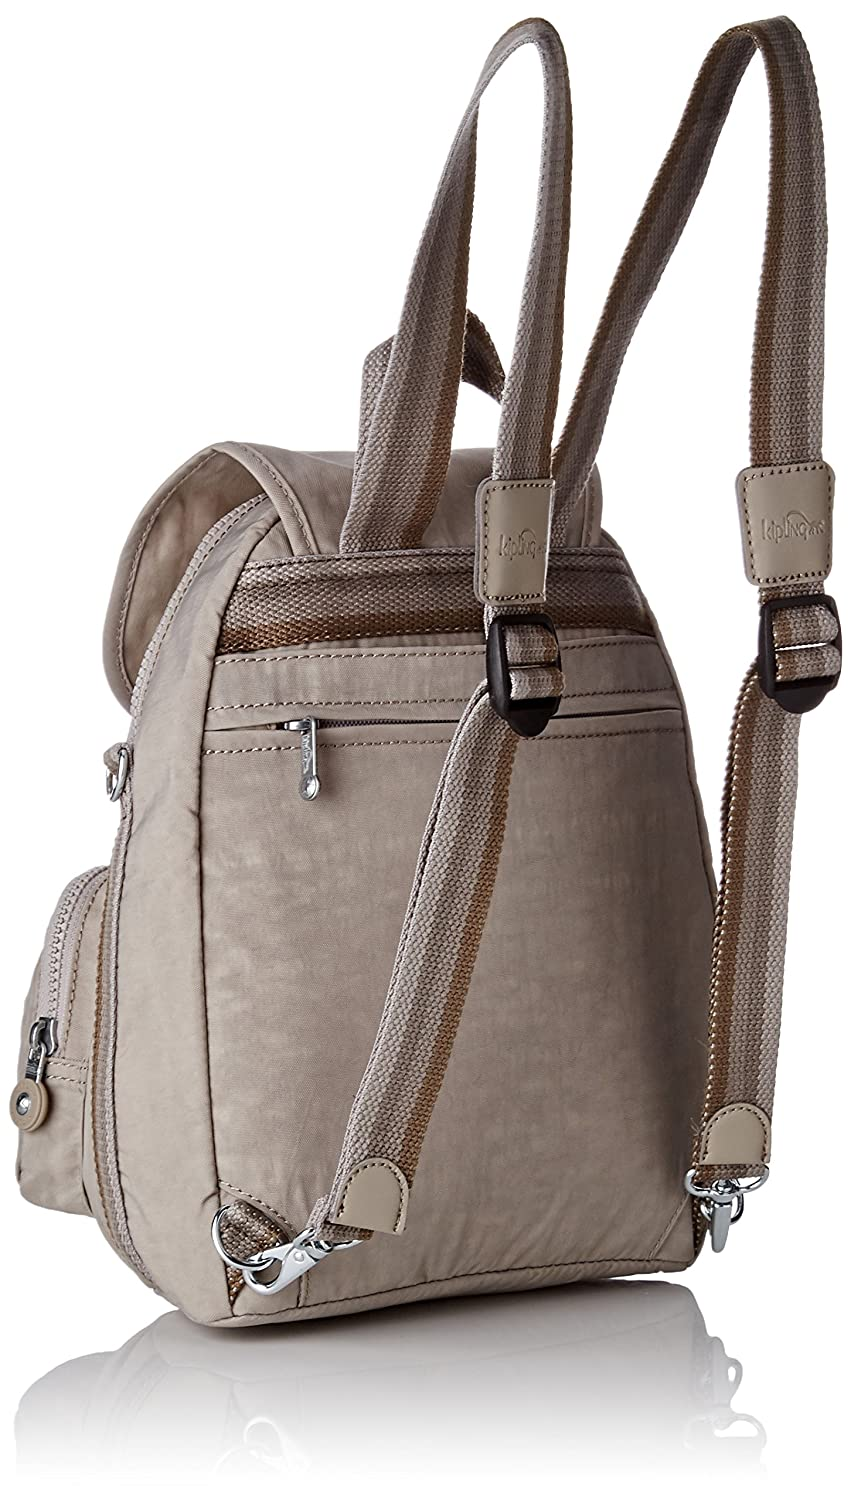 f19add8ef3 Kipling Womens Firefly Up Backpack Beige (Pastel Beige C): Amazon.co.uk:  Shoes & Bags